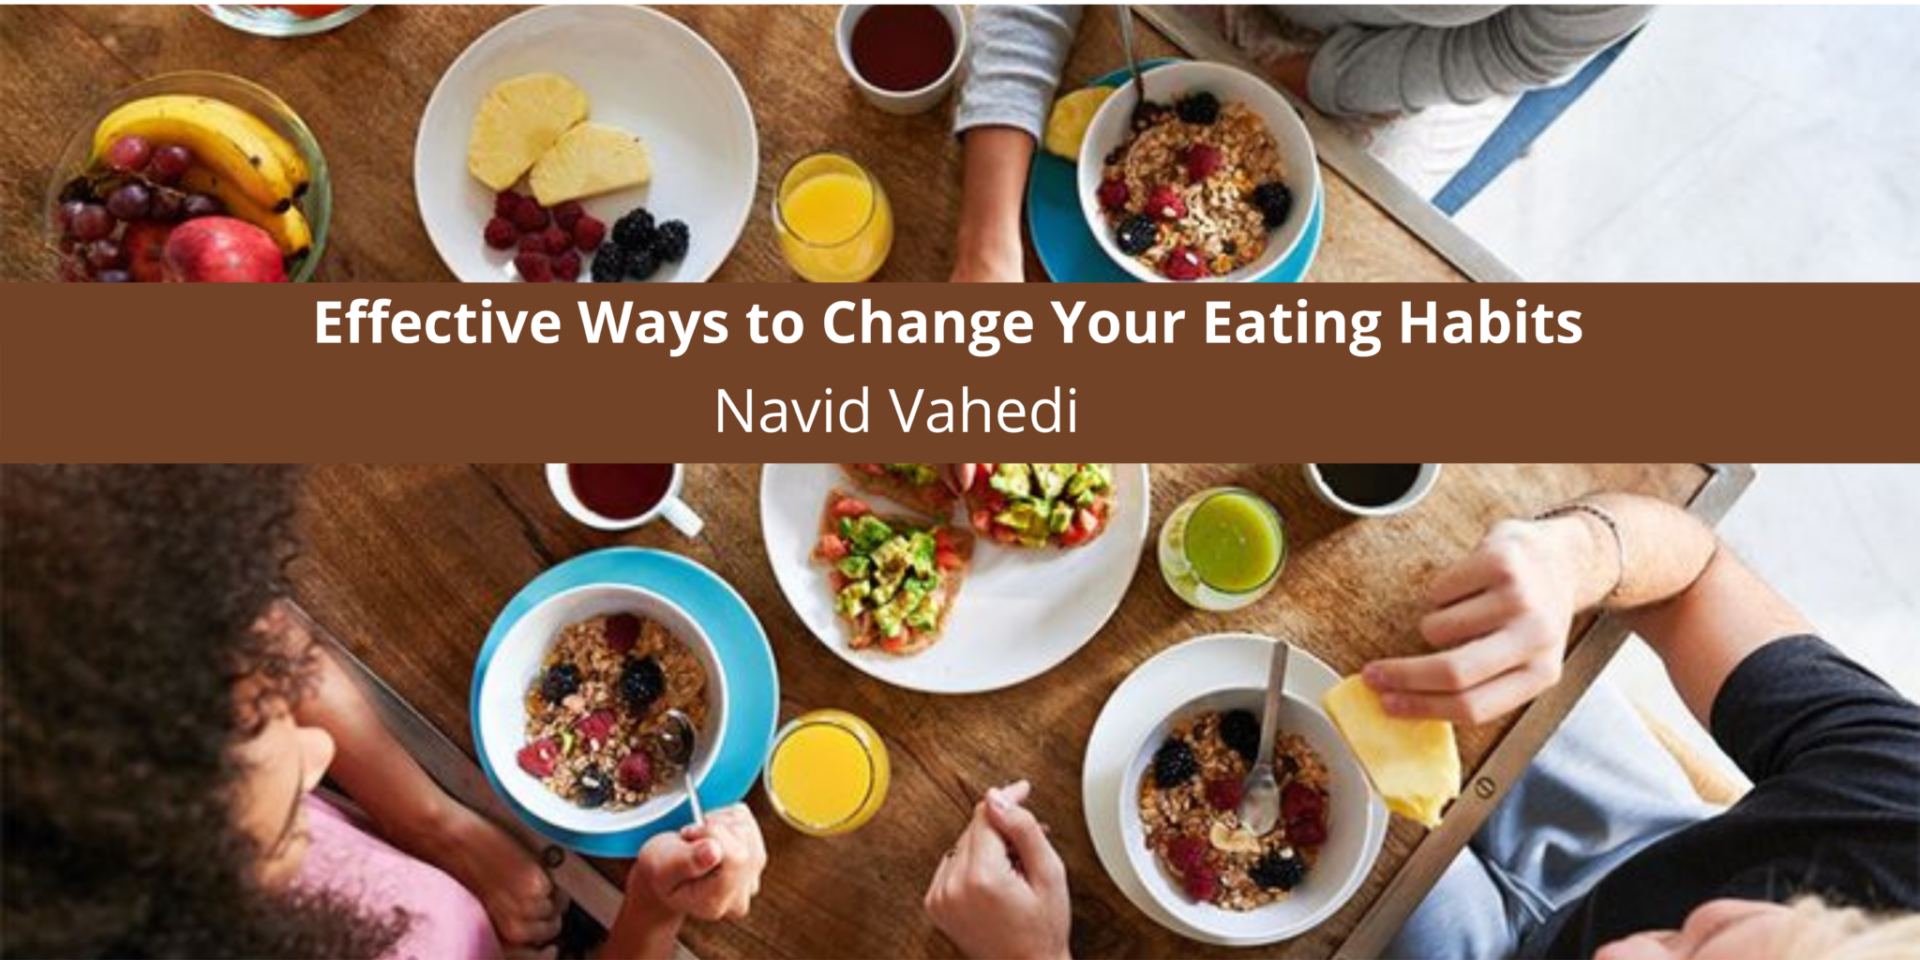 Dr. Navid Vahedi Offers Simple Yet Effective Ways to Change Your Eating Habits